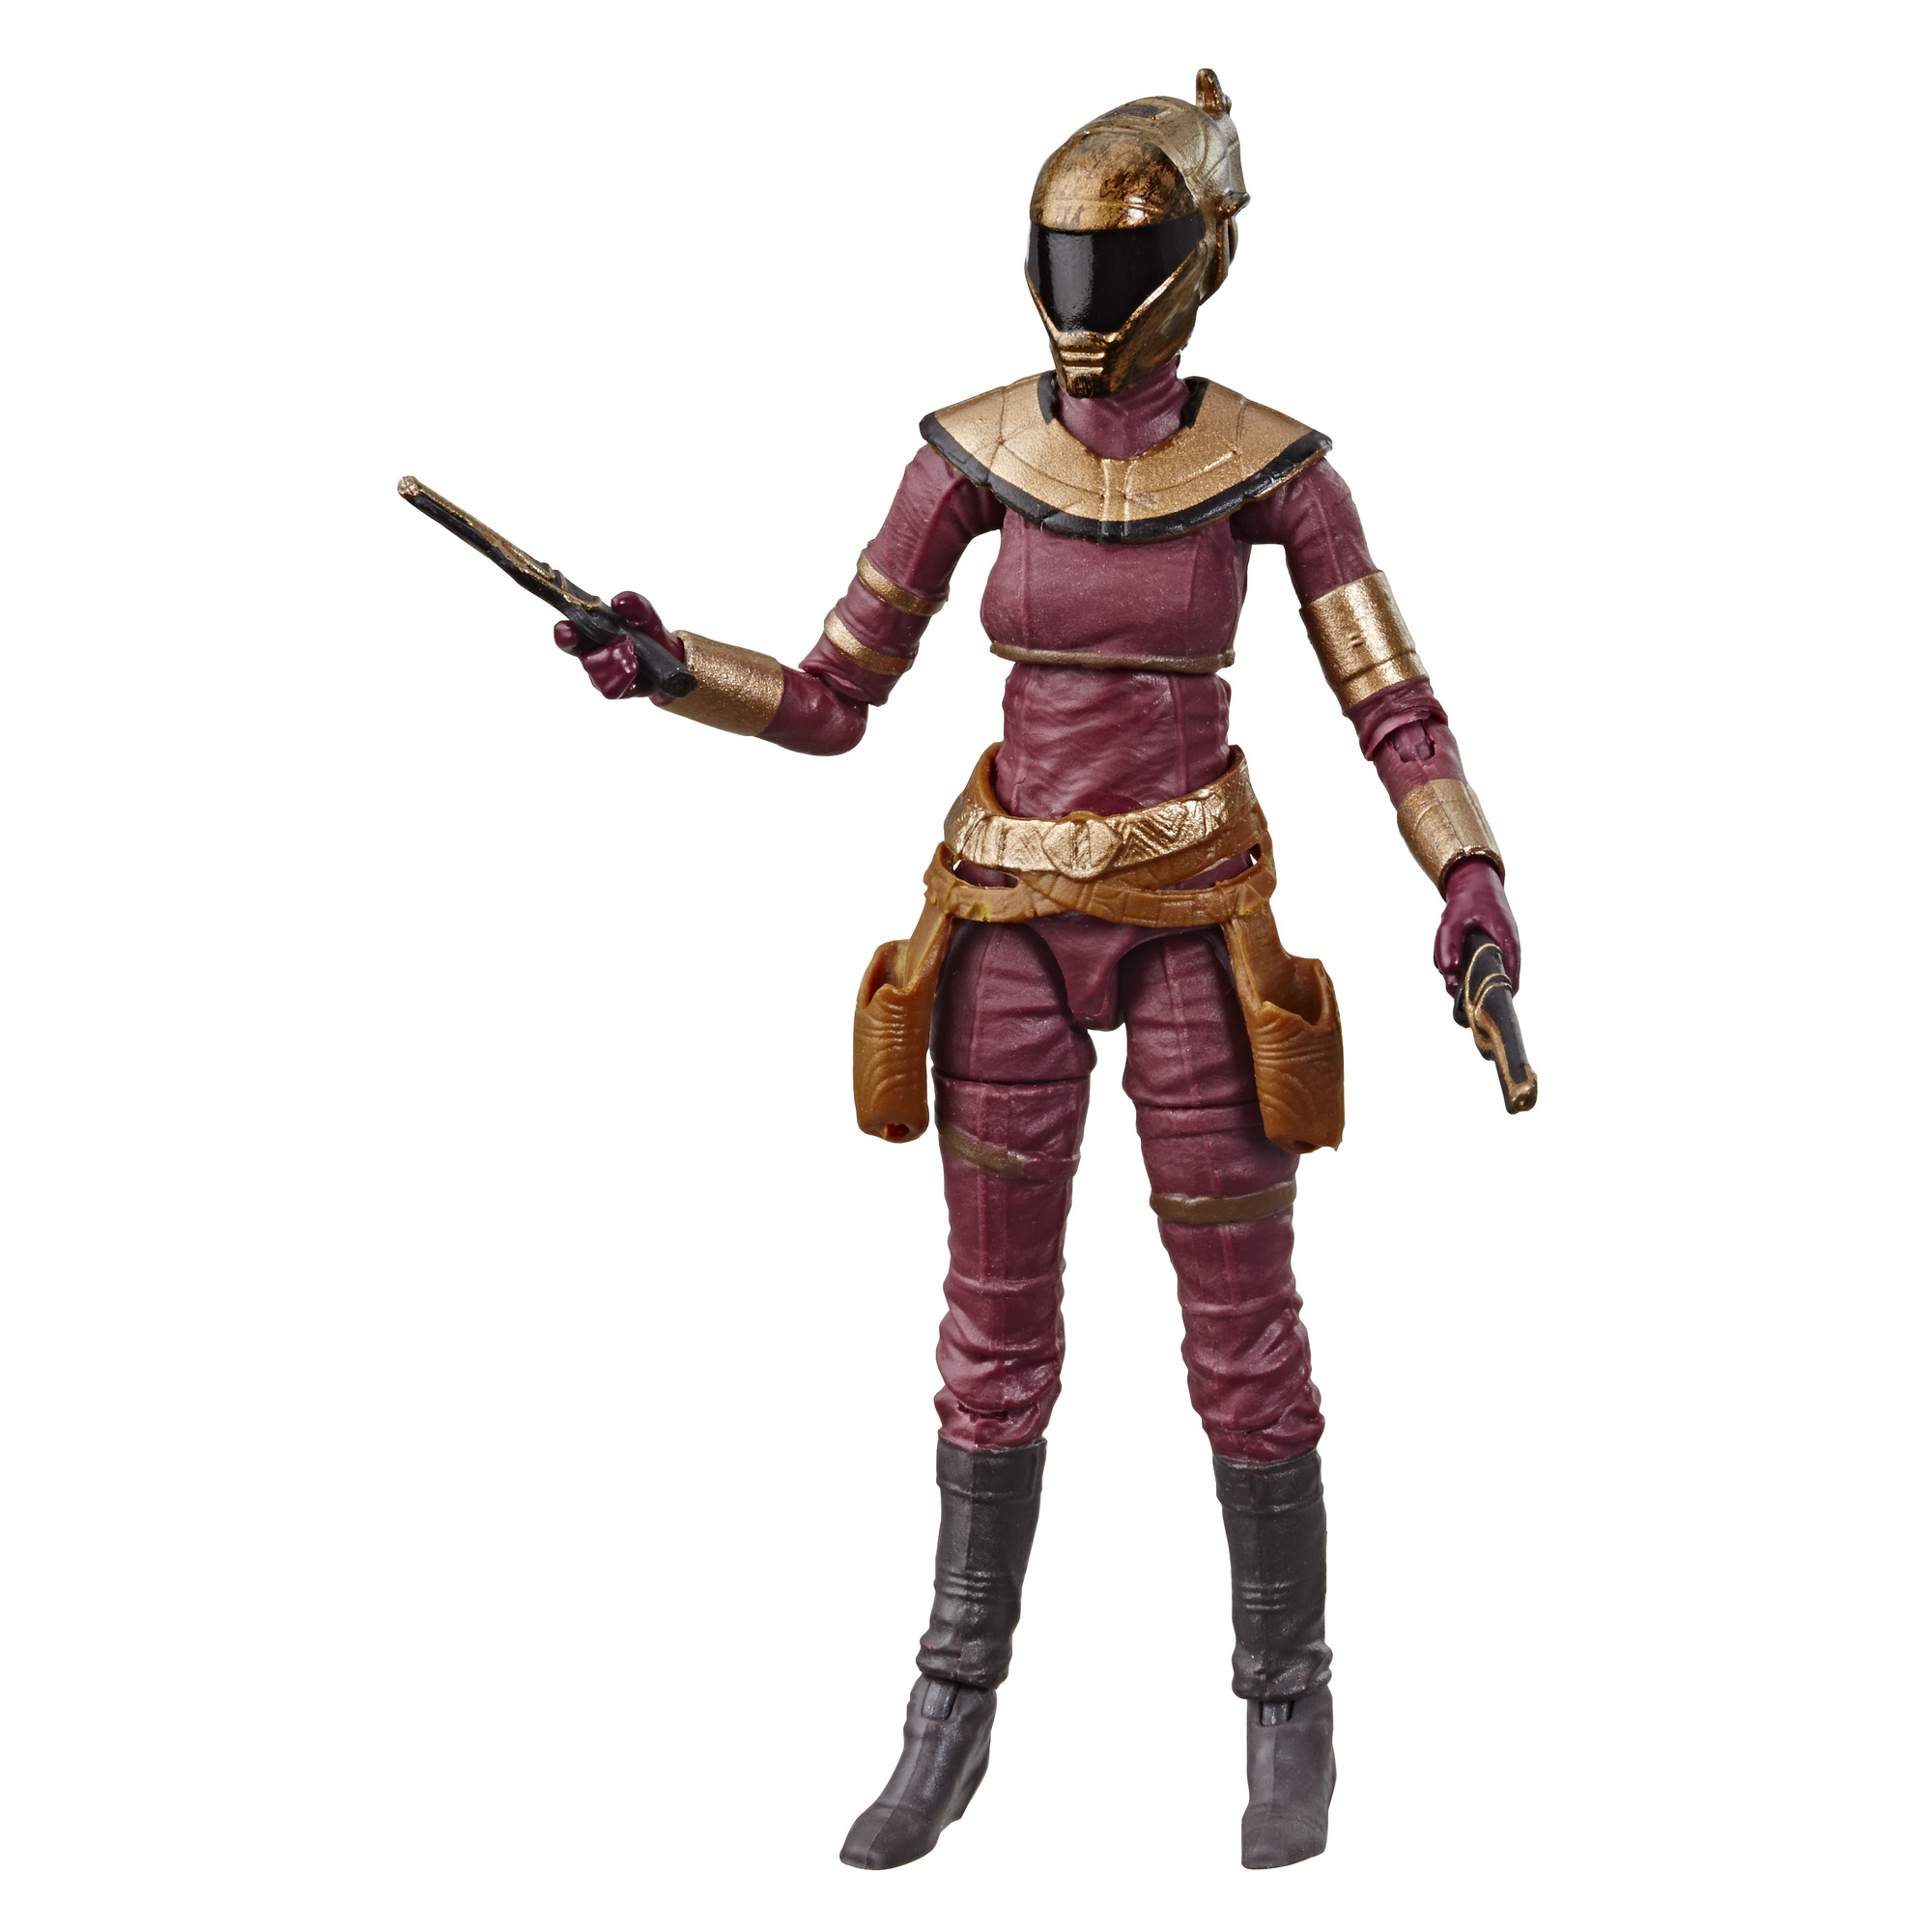 Star Wars The Rise Of Skywalker Black Series Action Figure Zorii Bliss